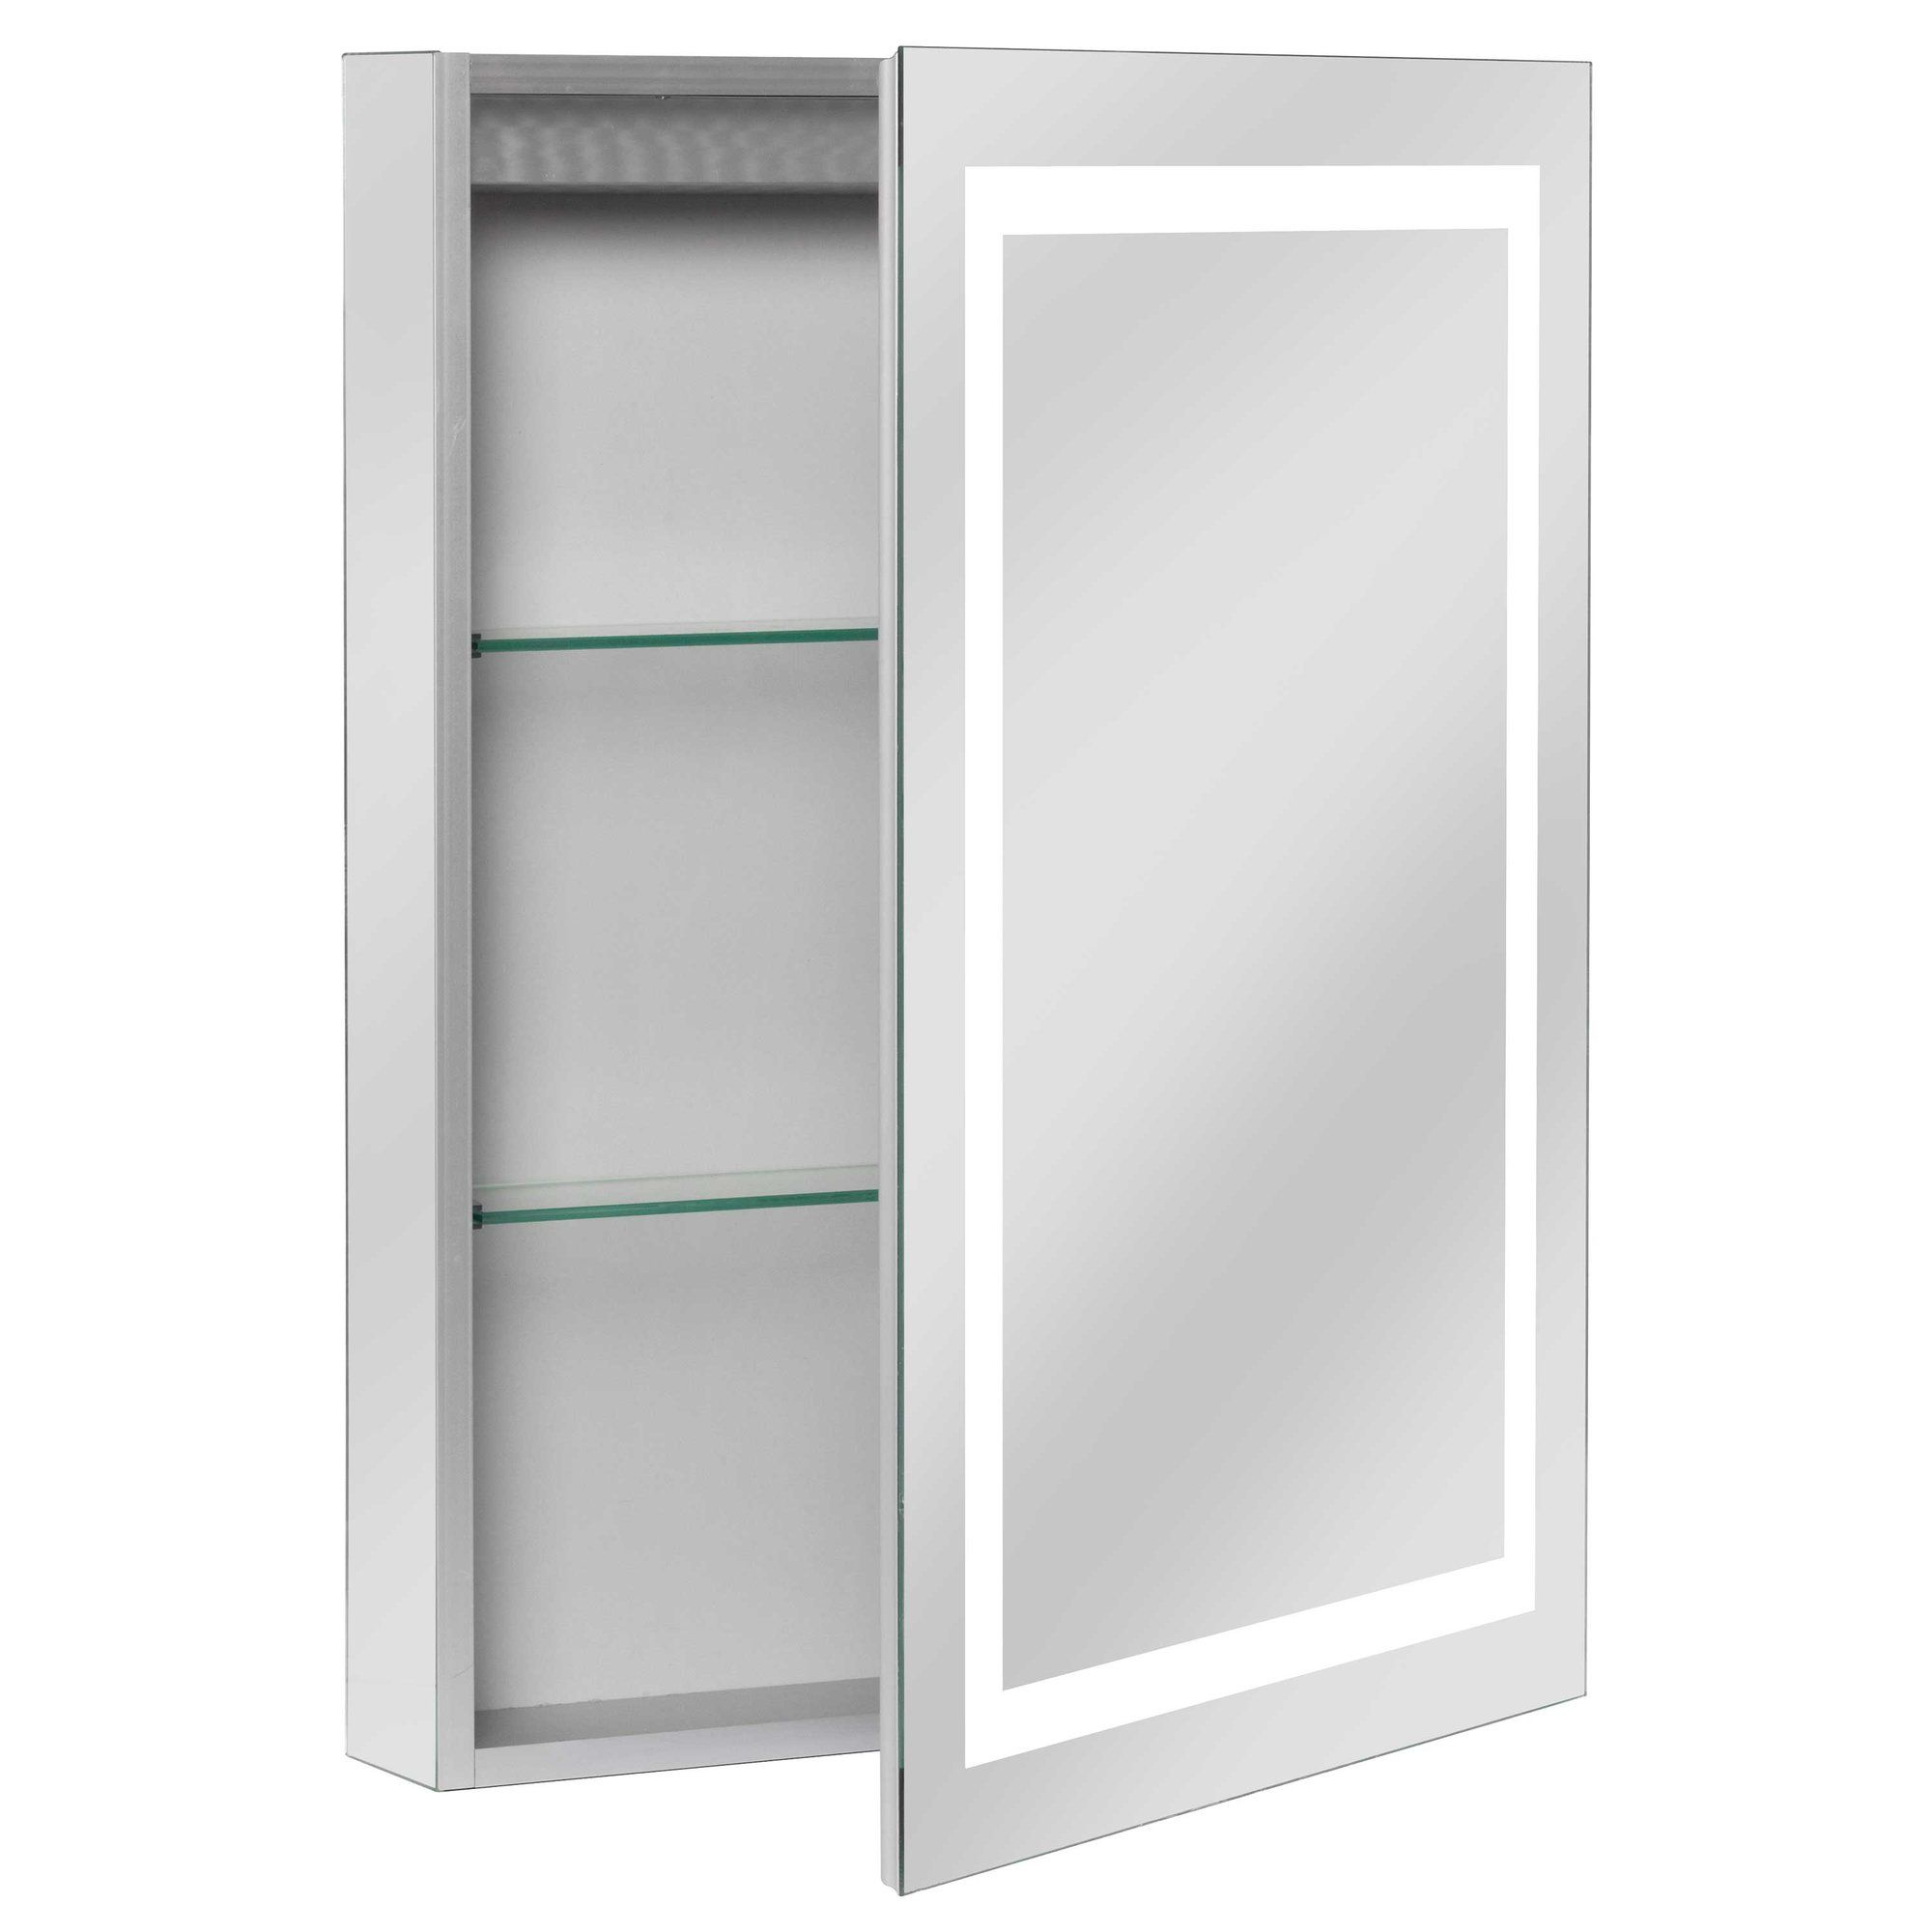 Ponticus 20 X 28 Recessed Medicine Cabinet With Led Lighting Lighted Medicine Cabinet Recessed Medicine Cabinet Washroom Decor